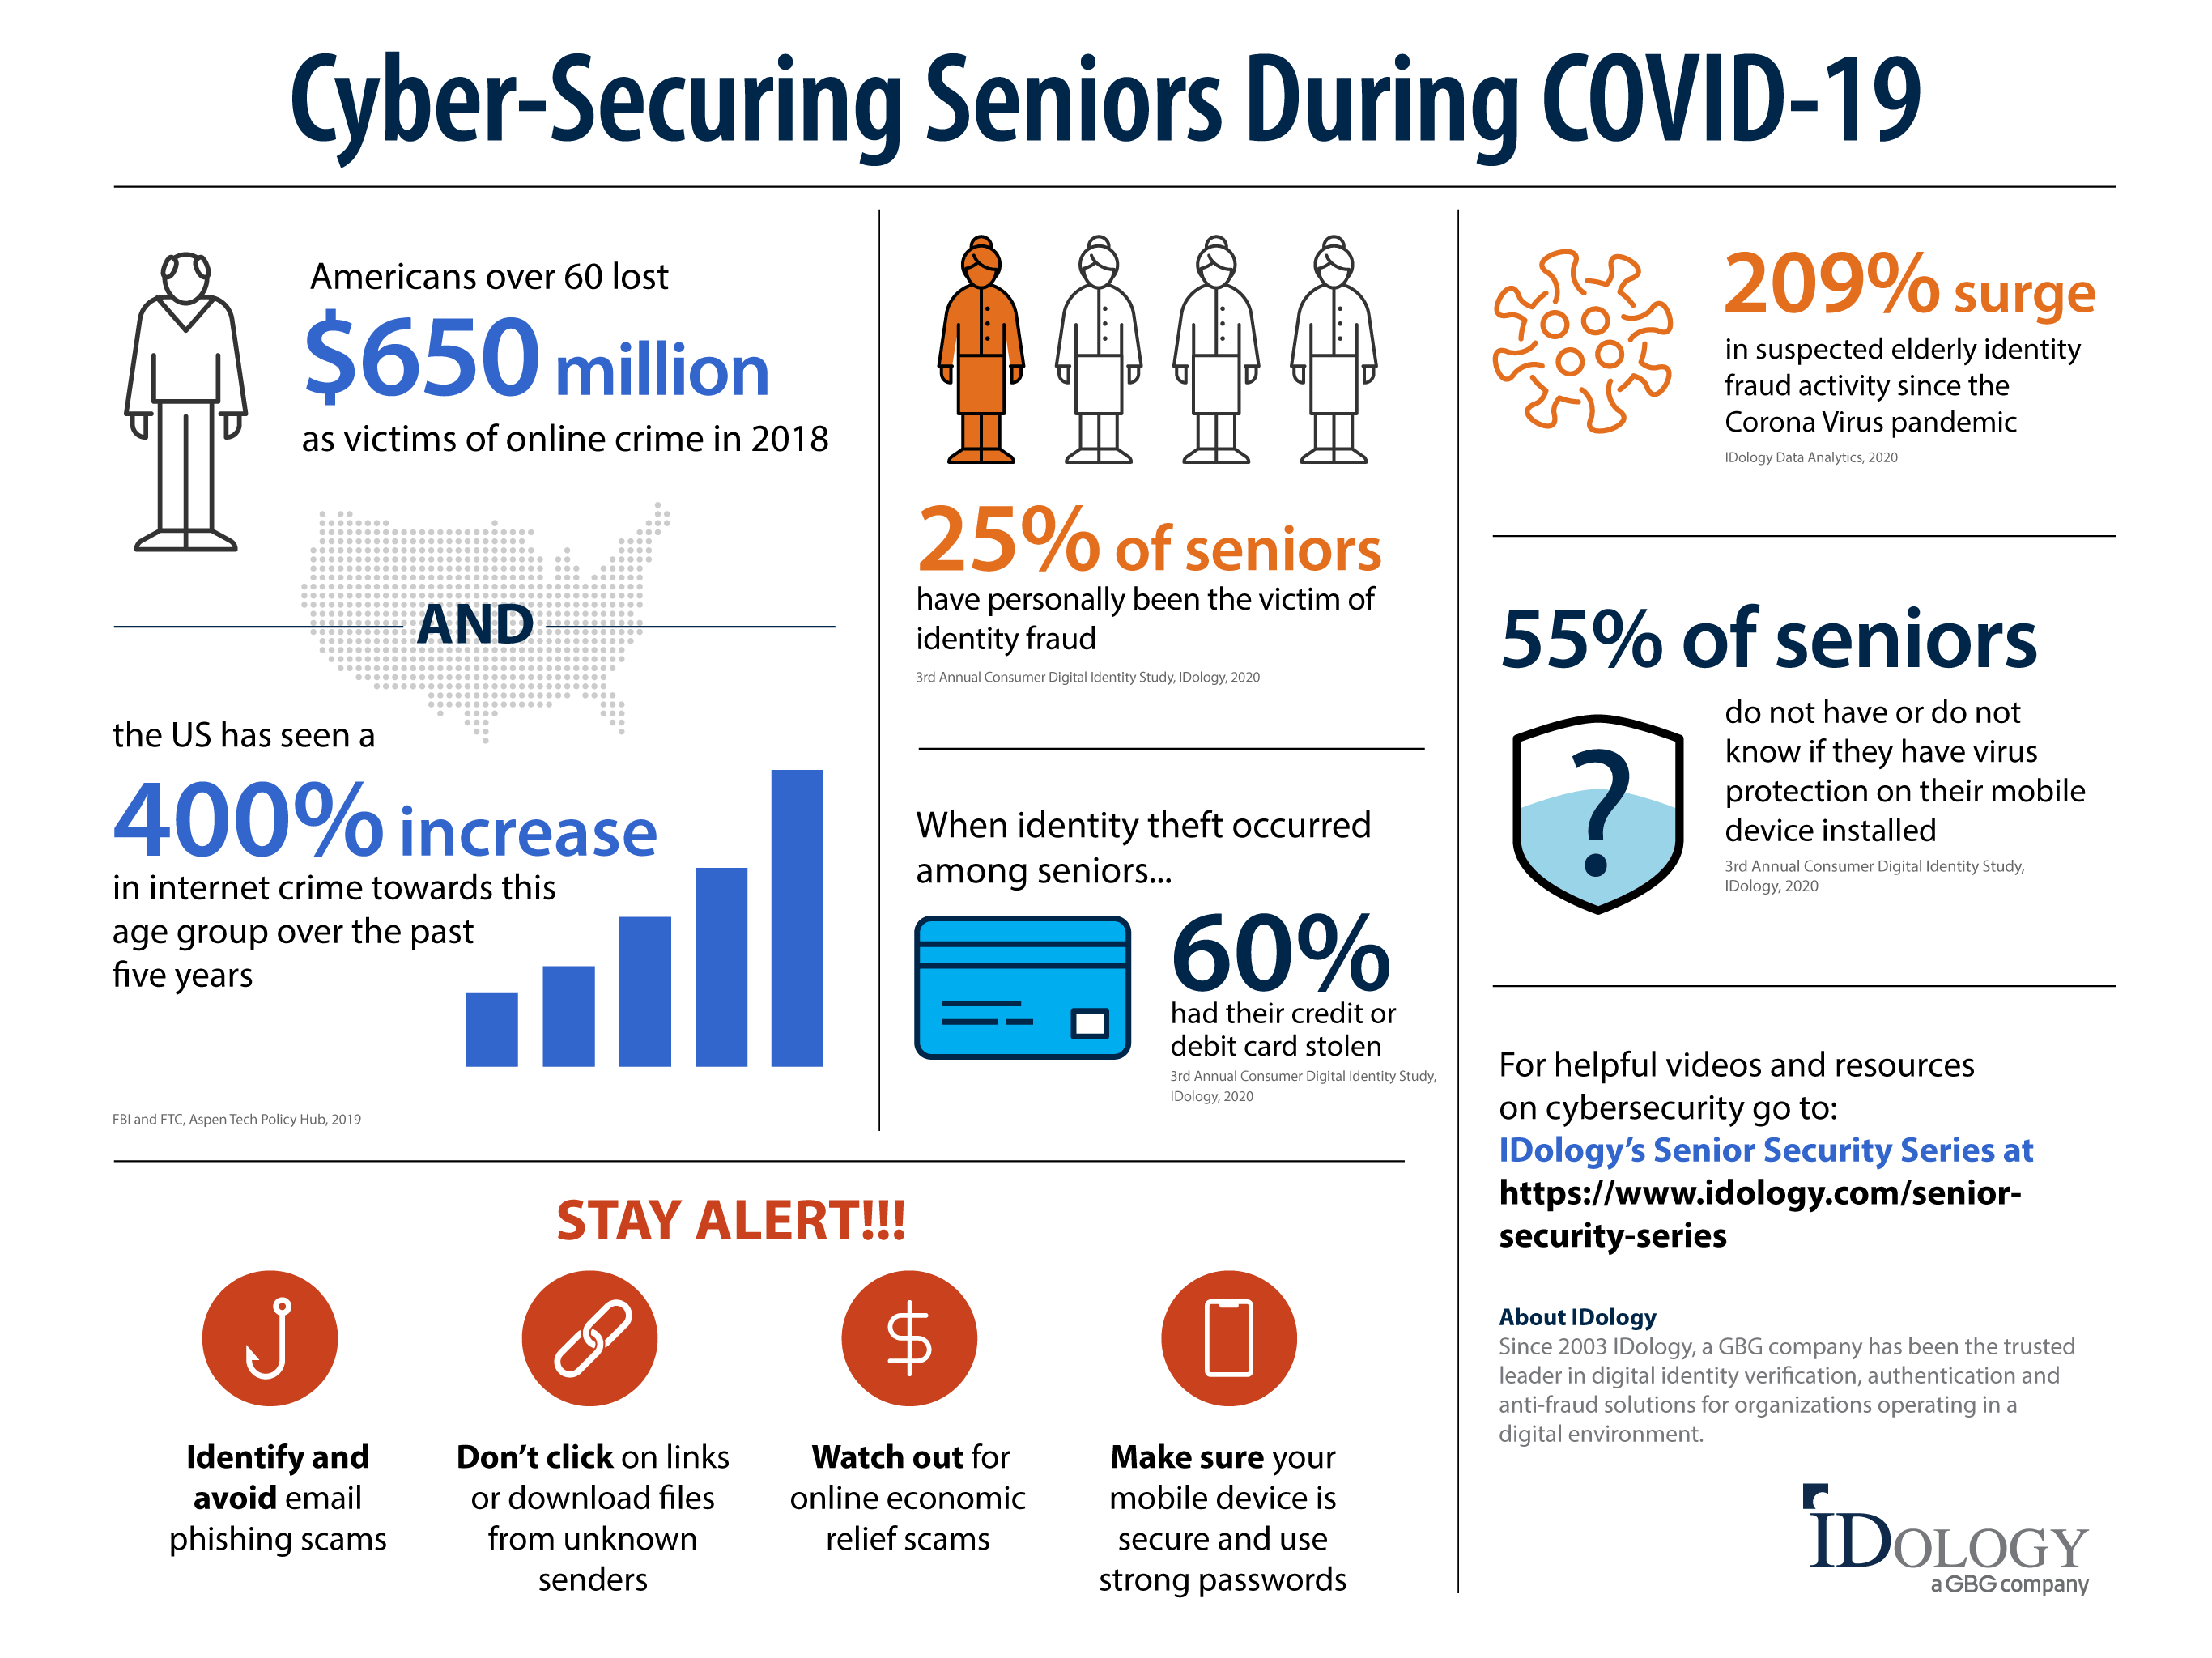 Infographic explaining cybersecurity statistics and tips for seniors during COVID-19